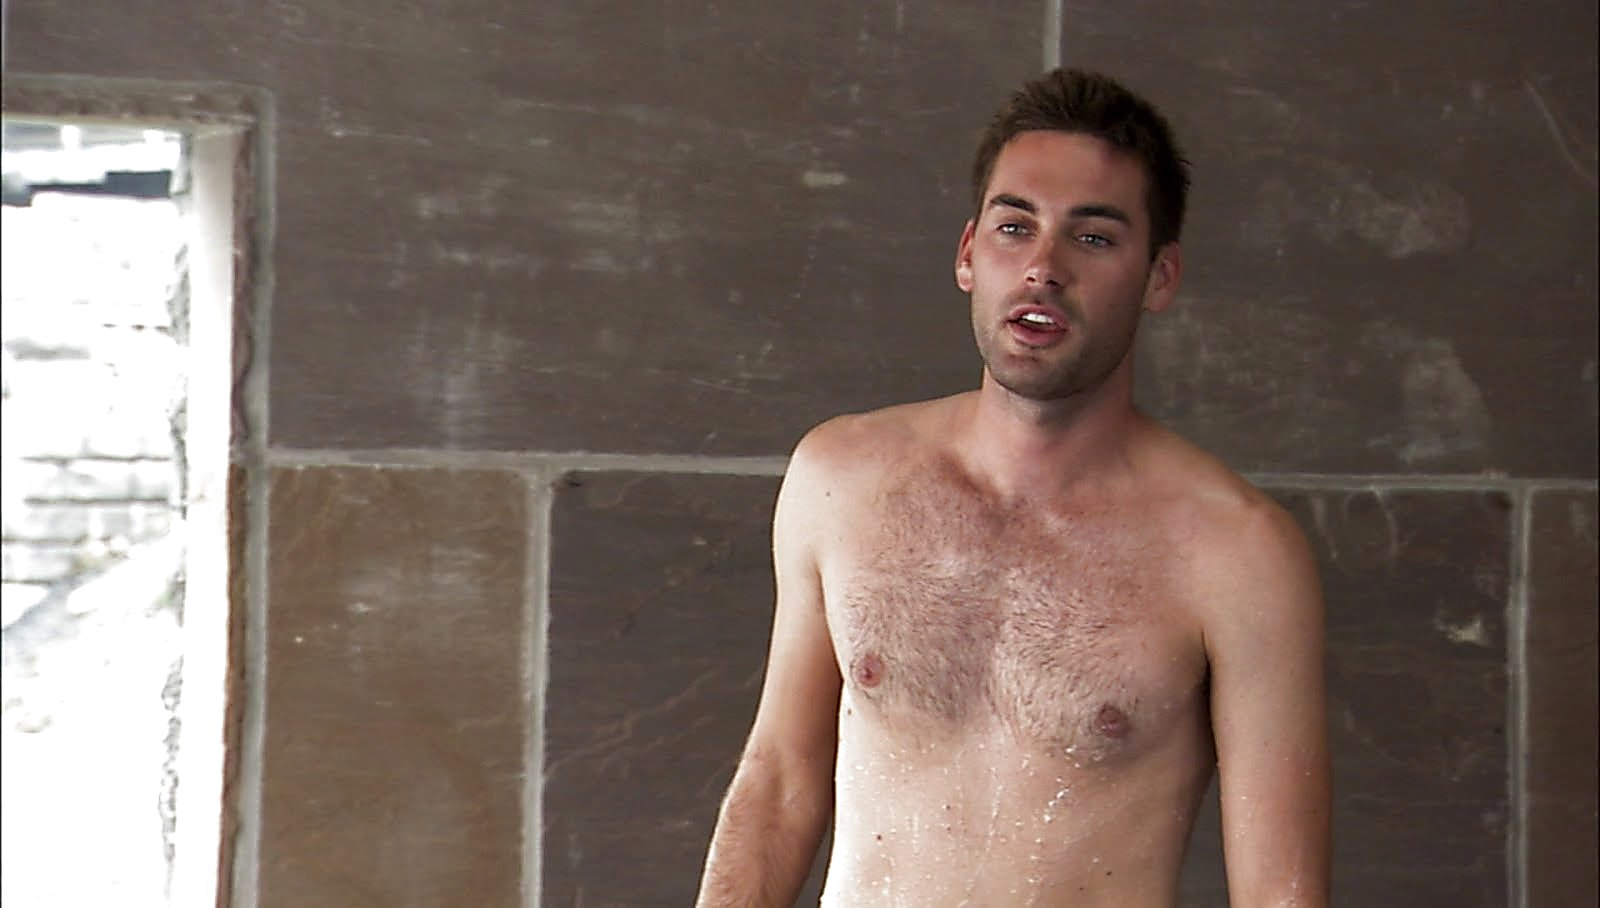 Drew Fuller sexy shirtless scene May 2, 2018, 11am